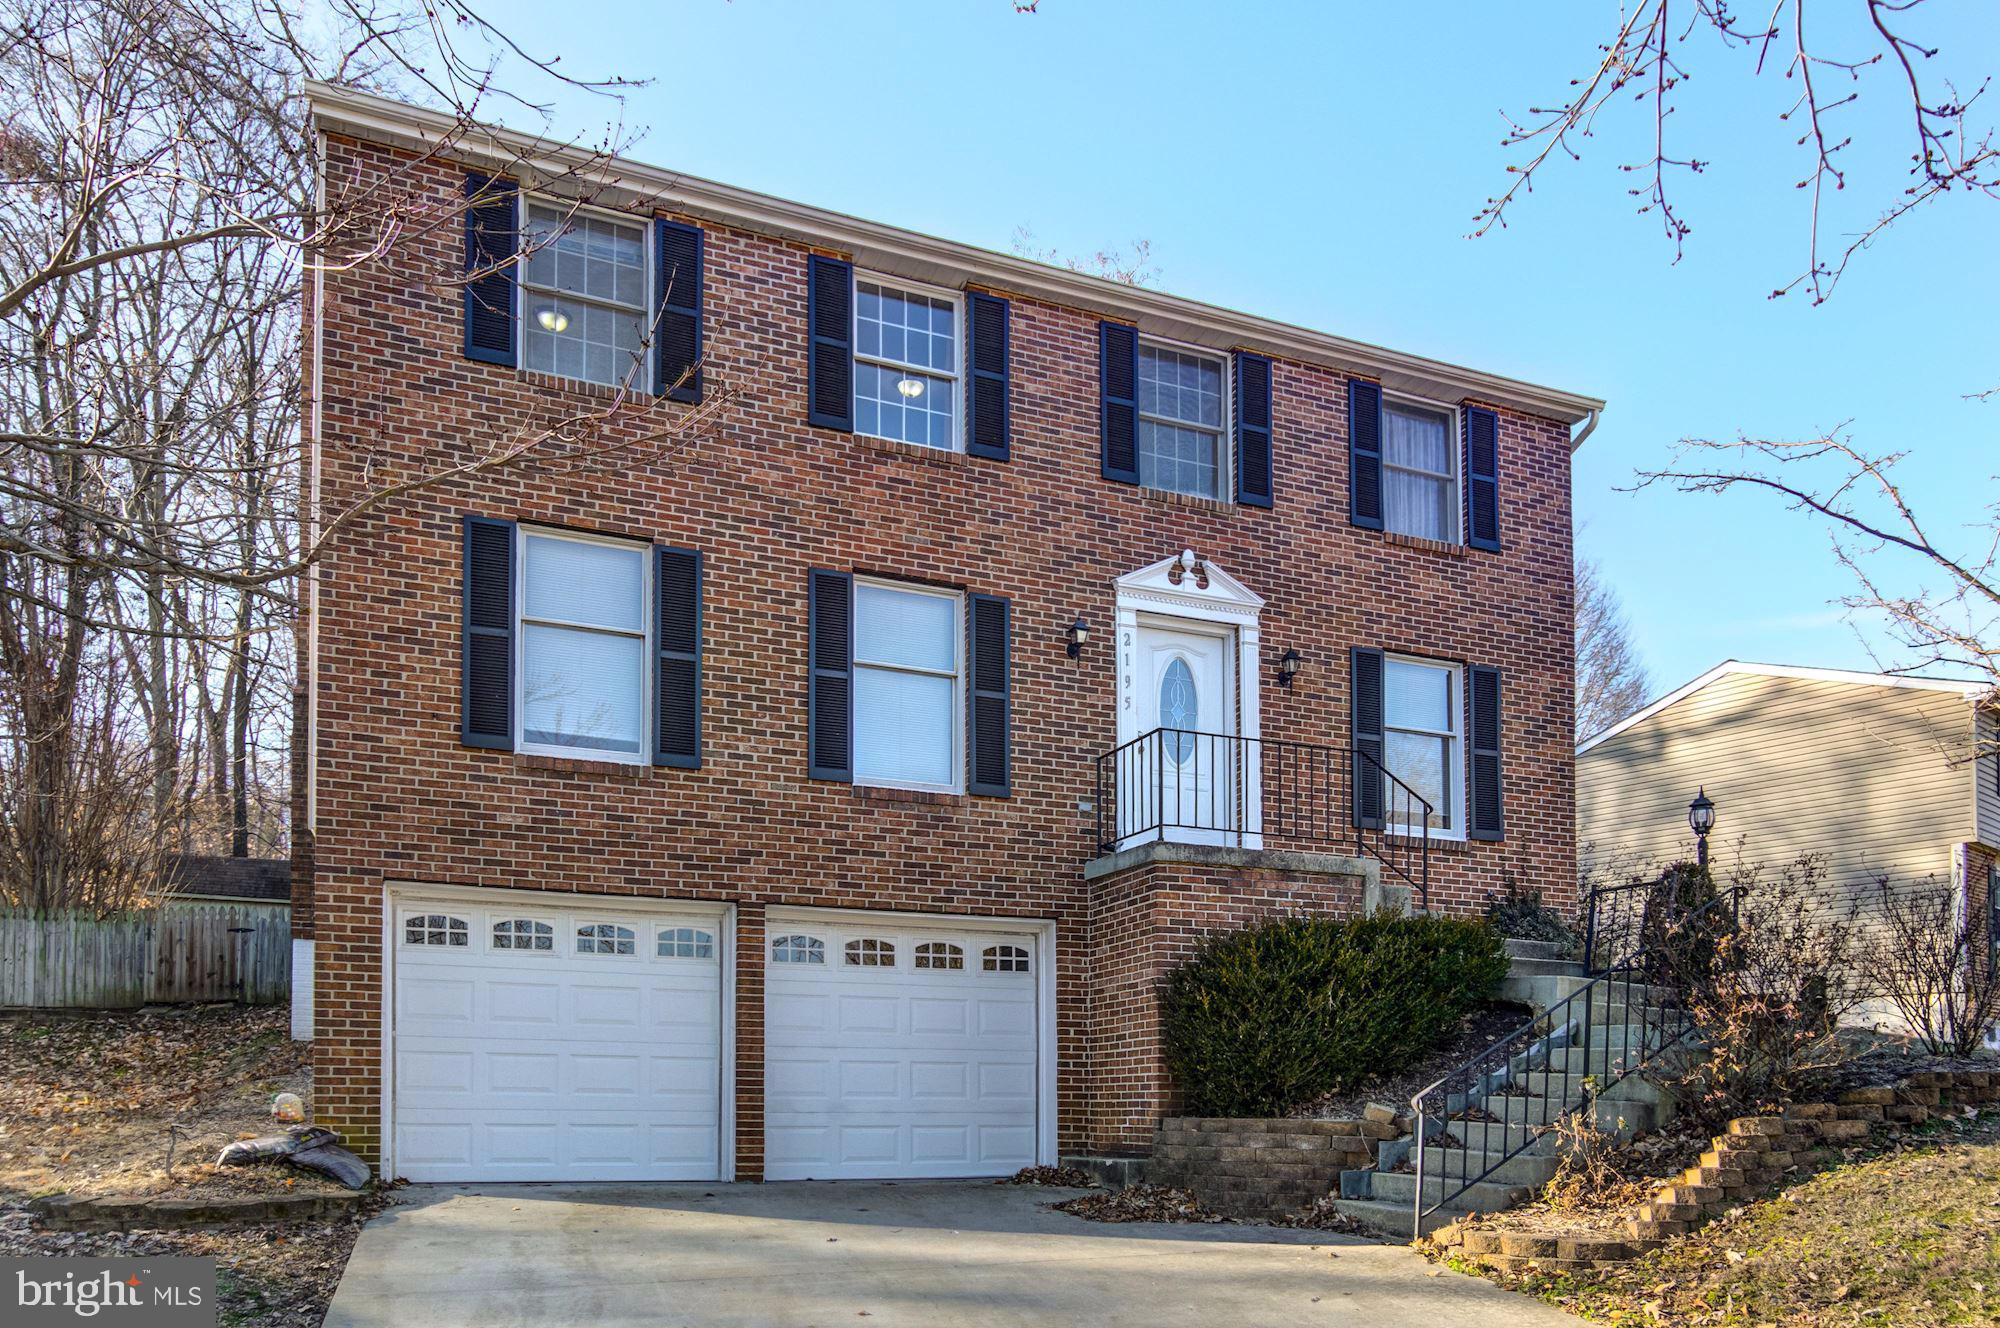 Beautiful Brick Front Colonial with Two Car Garage!  Main level features Wood Floors! Freshly Painted Throughout!  New Carpet in Bedrooms and lower level! Kitchen fully updated and upgraded in 2018 features Stainless Appliances, Granite Counters, and Custom Cabinets! Main level with living room, dining room, Kitchen with breakfast area and opens up to Great Room with Fireplace.  Upper level features Four Large Bedrooms and Two Full Bathrooms. Walk-in closet in Master Bedroom.  Finished lower level.  Oversized Two Car Garage! New Siding in 2017.  Captivating rear fenced yard and fire pit!